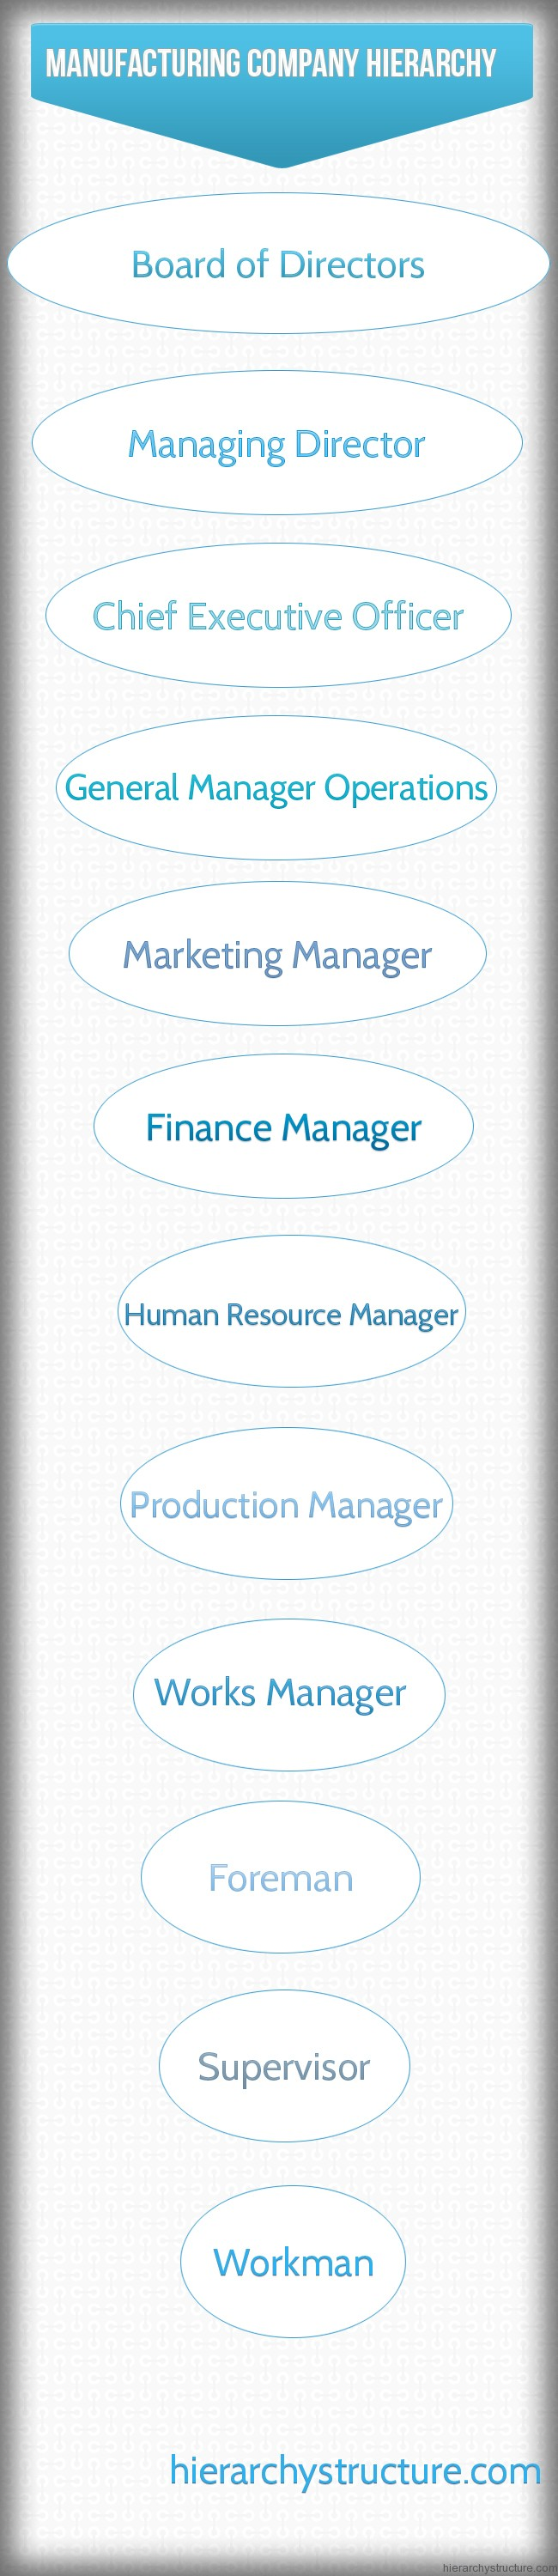 Manufacturing Company Hierarchy